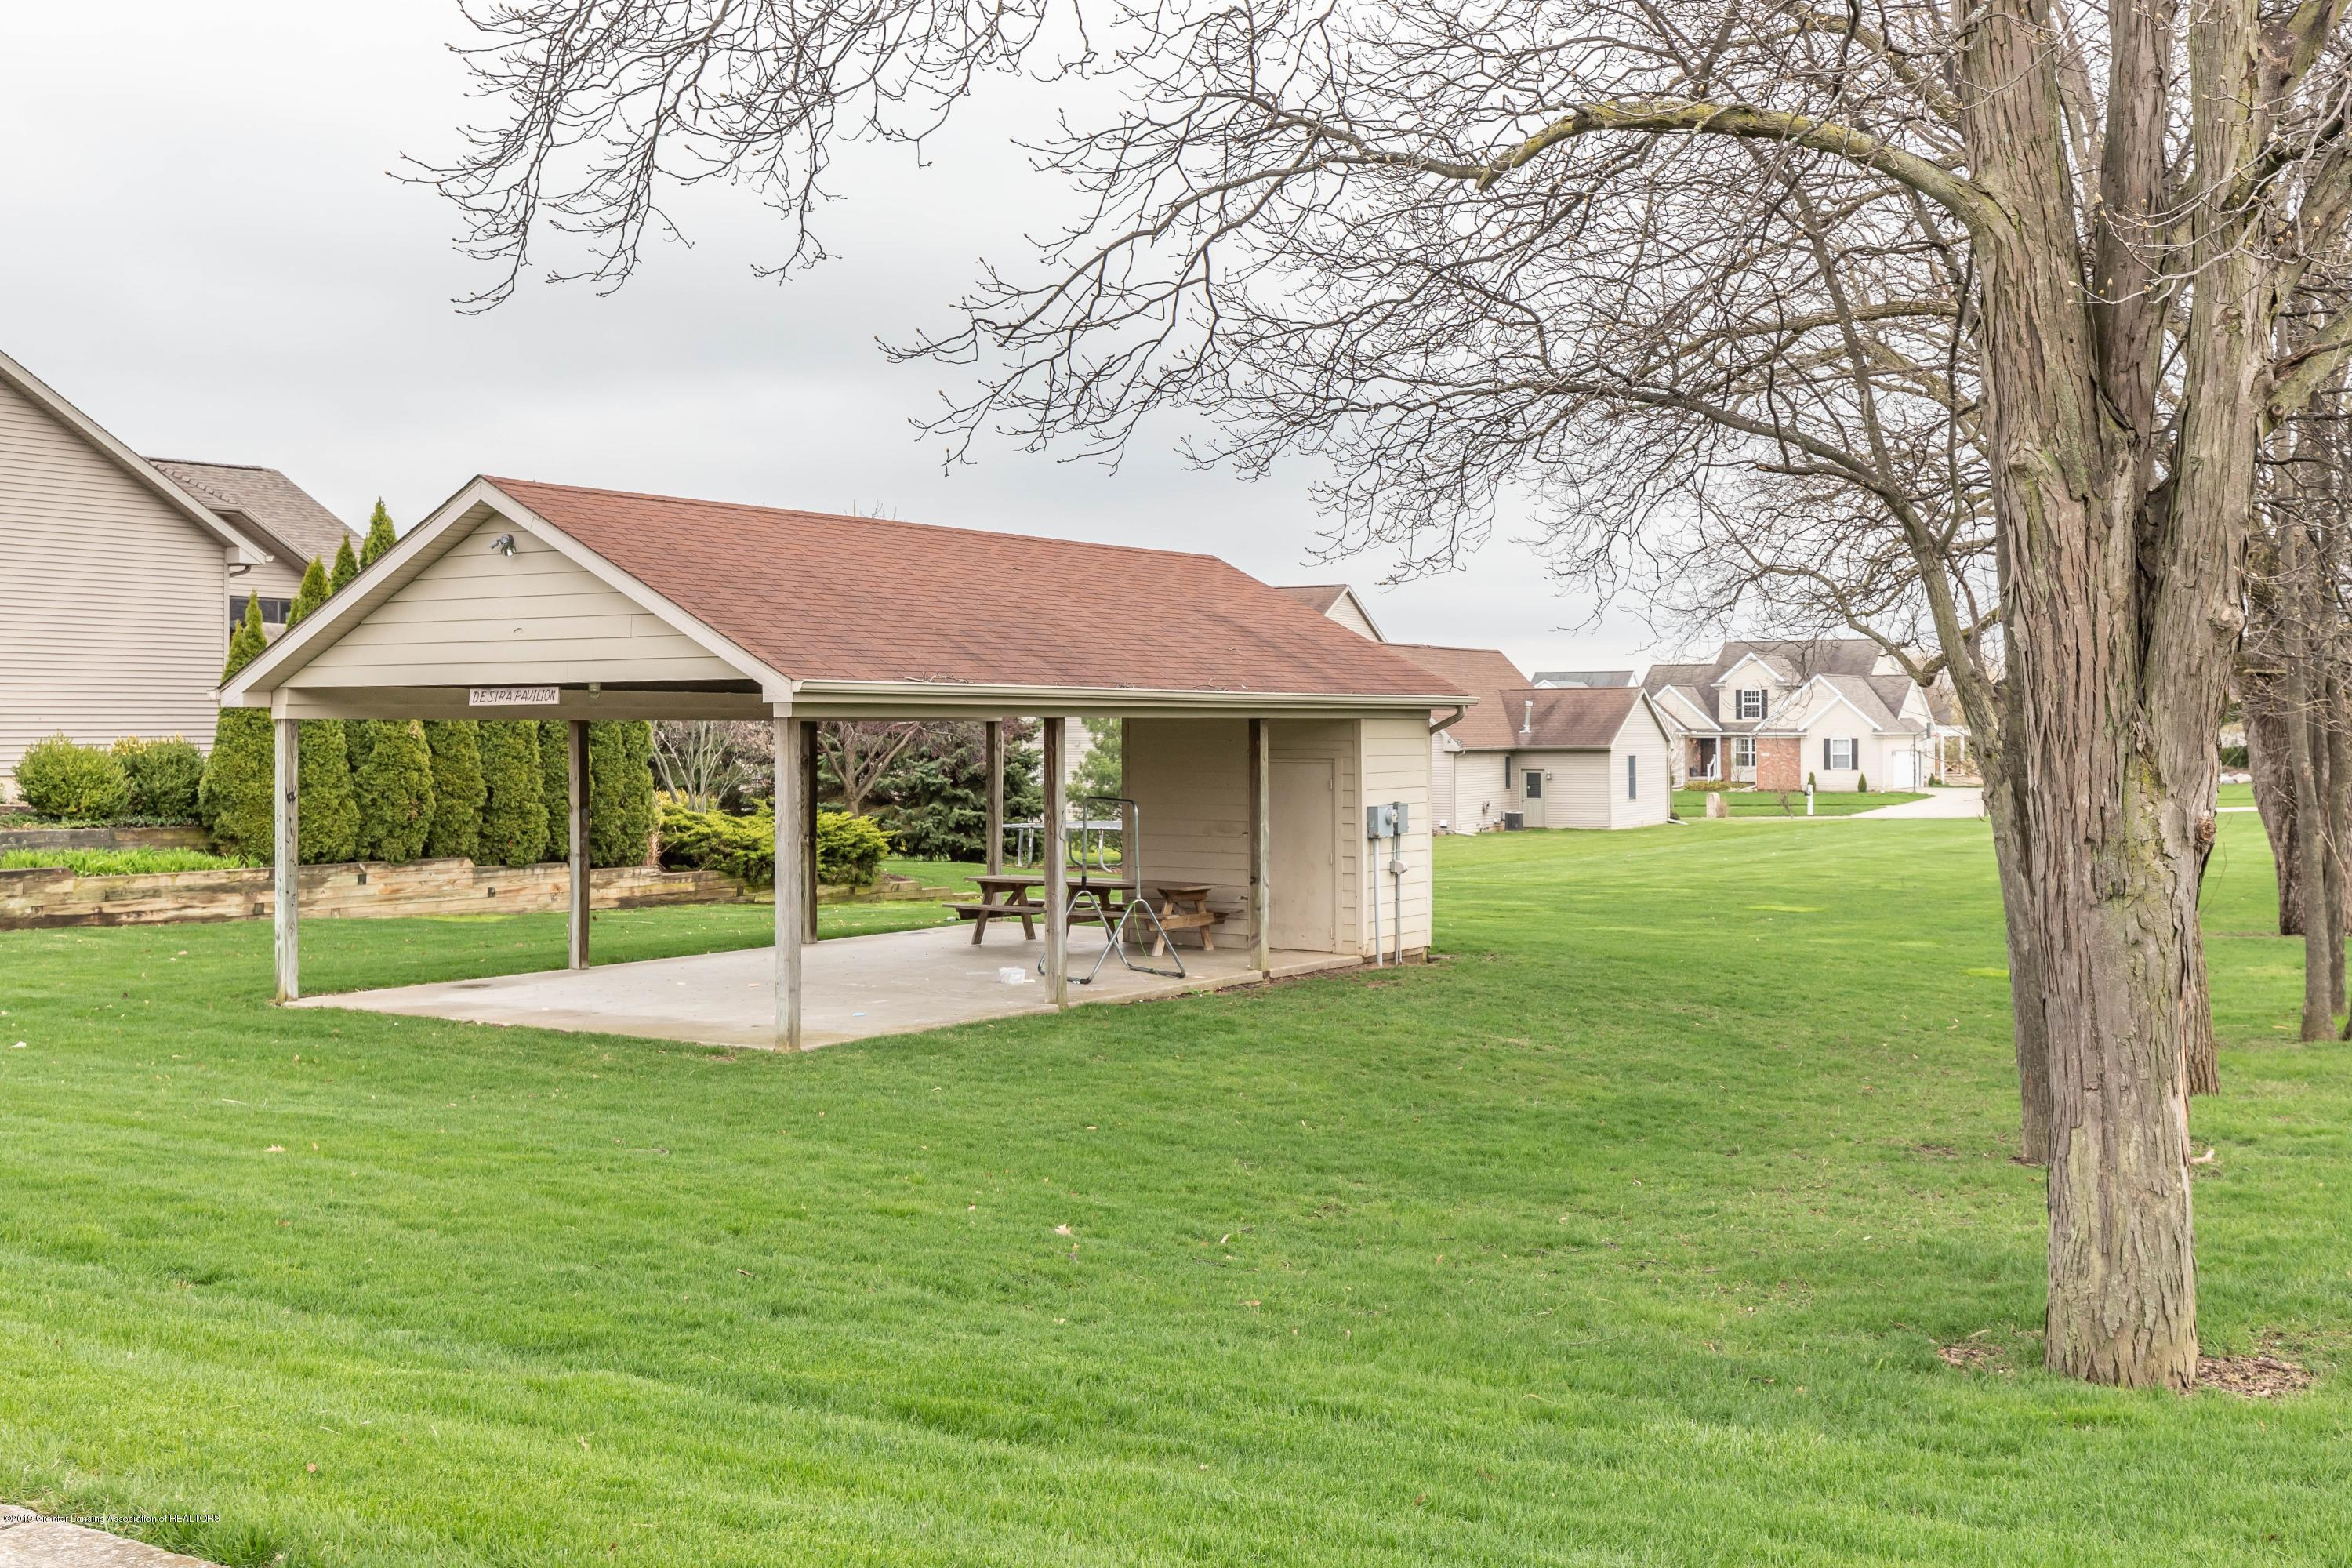 3150 Crofton Dr - shed - 84